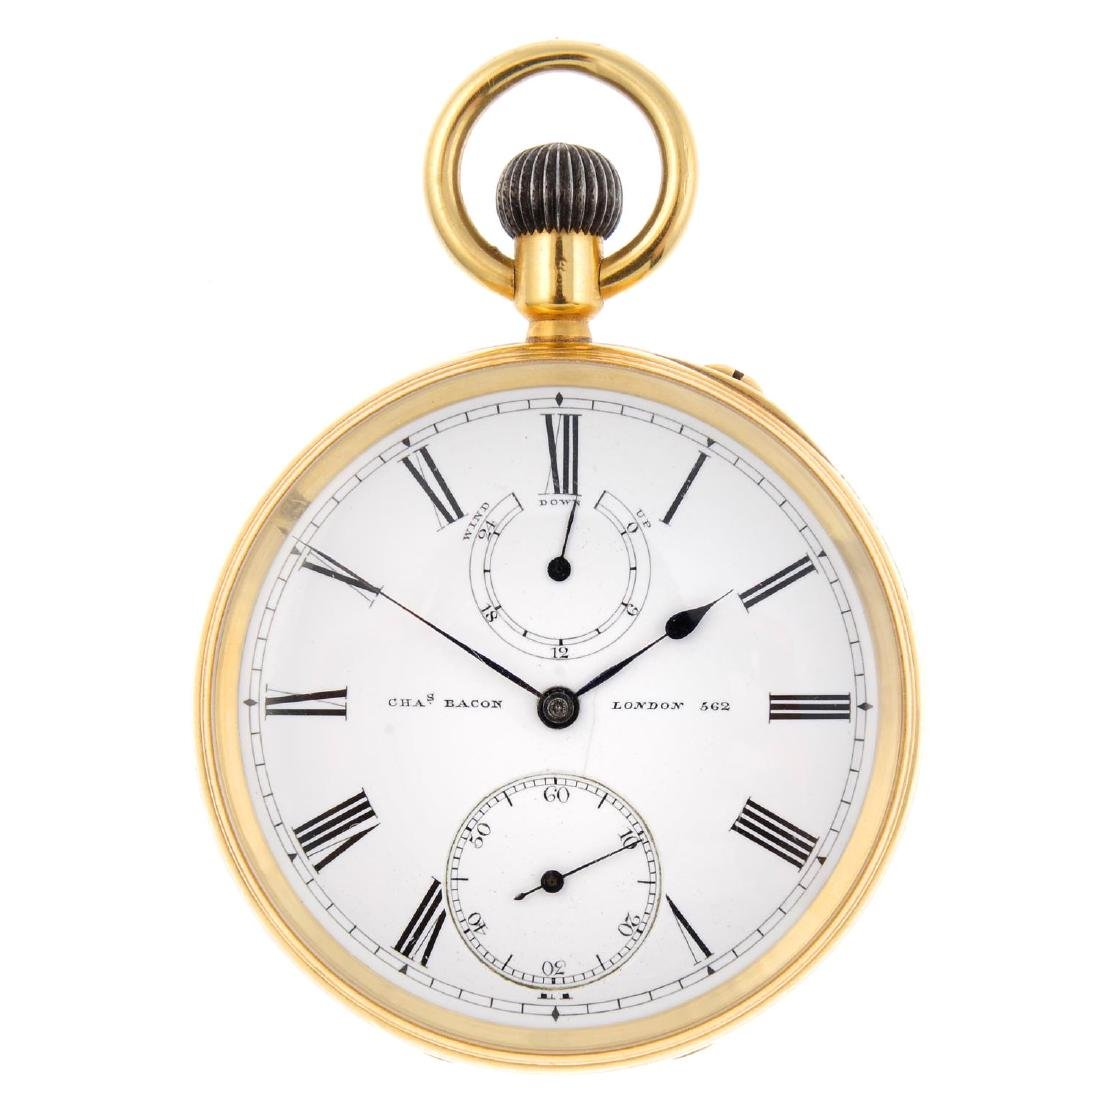 An open face pocket watch by C.Bacon. 18ct yellow gold